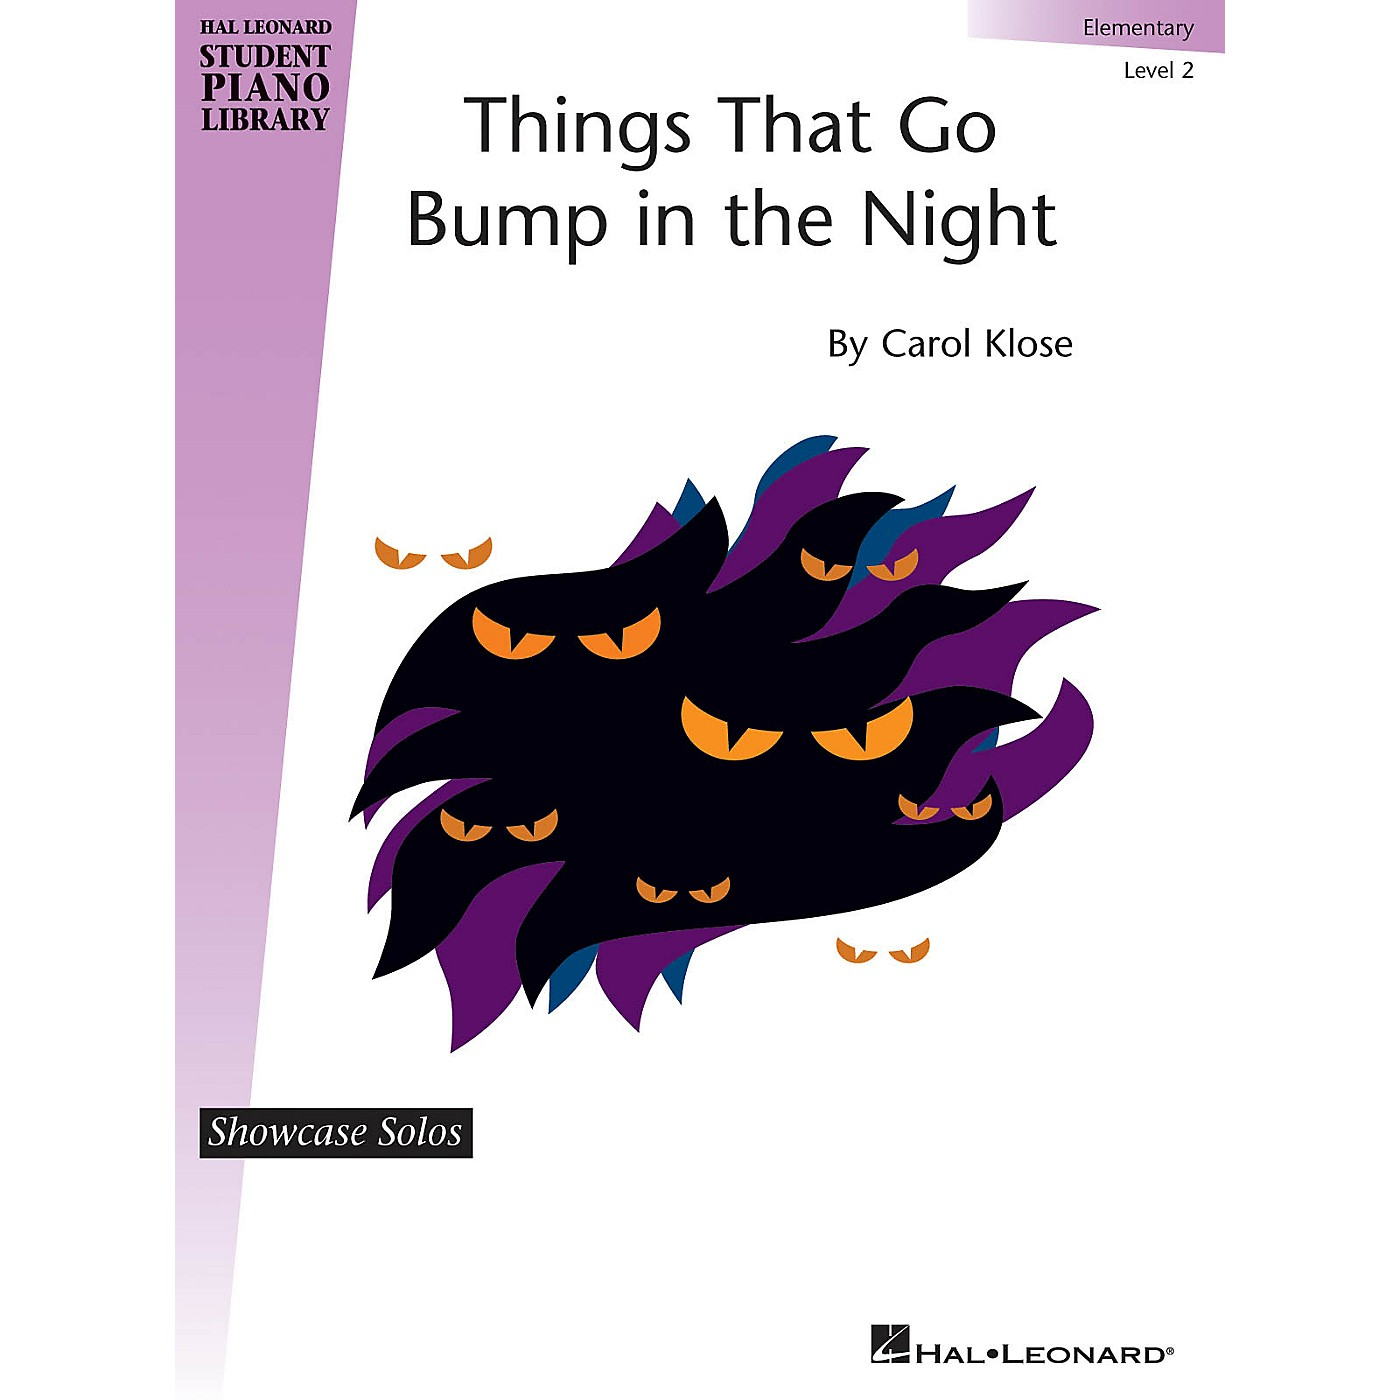 Hal Leonard Things That Go Bump in the Night Piano Library Series by Carol Klose (Level Elem) thumbnail